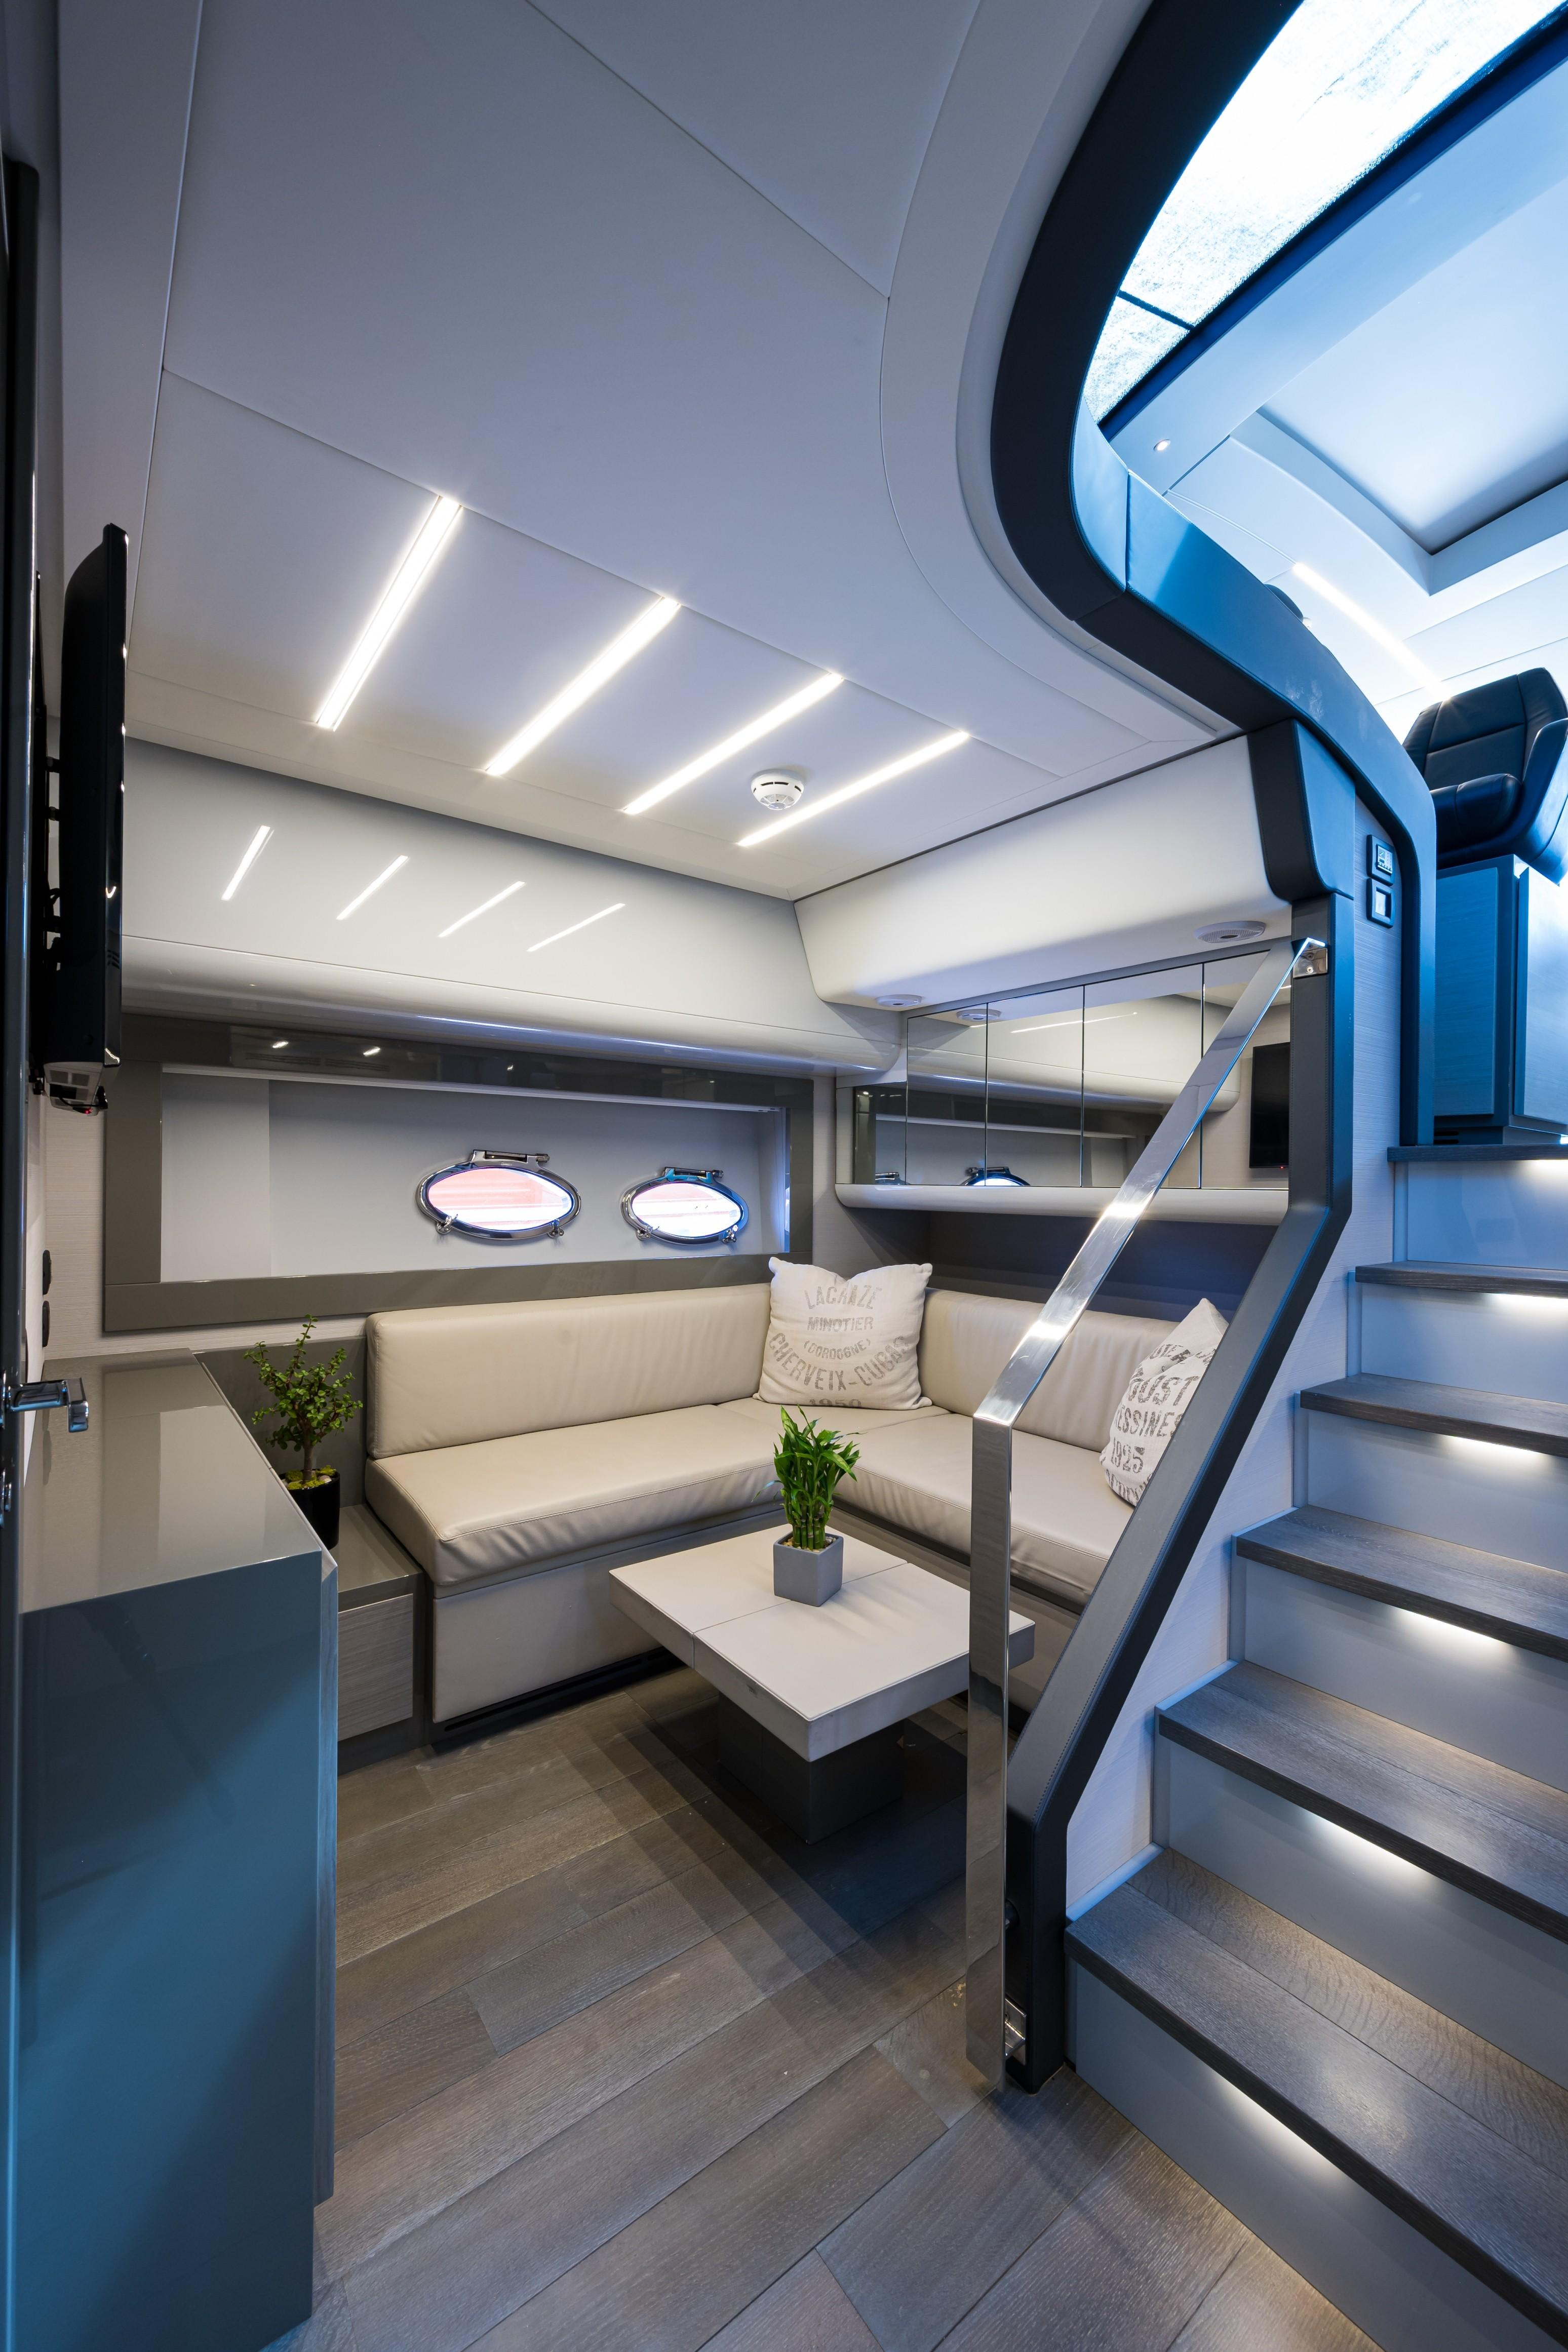 2016 Pershing 62 - Lower Salon